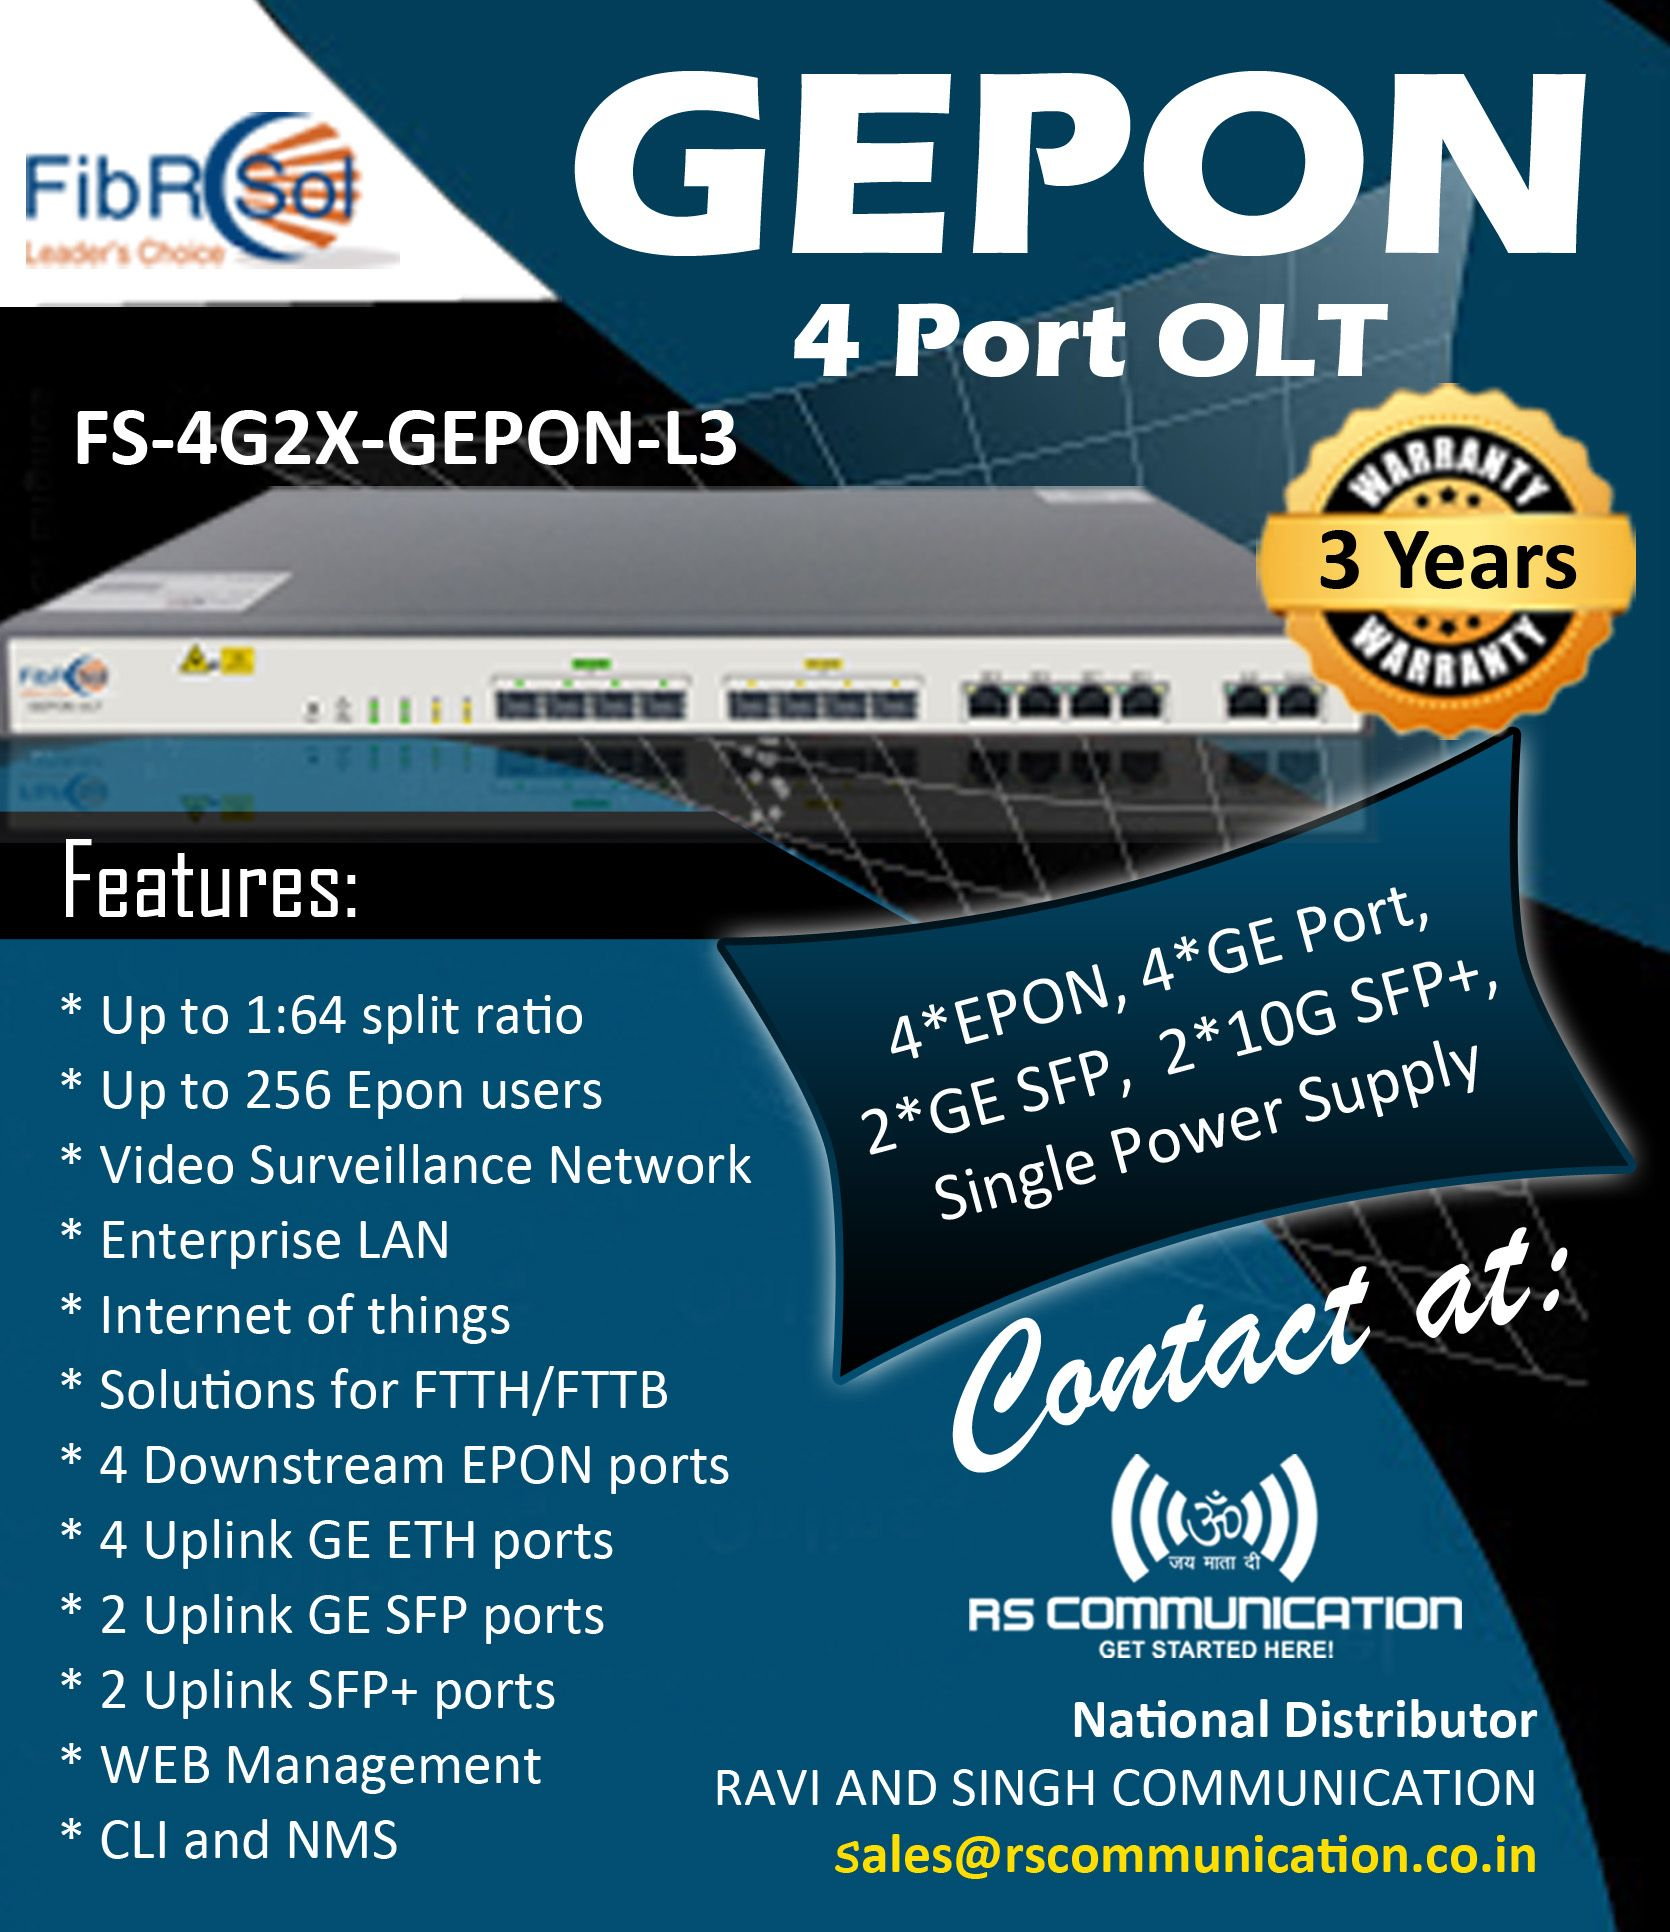 Fibrsol S Gepon 4 Port Olt Hurry In 2020 Video Surveillance Power Communication